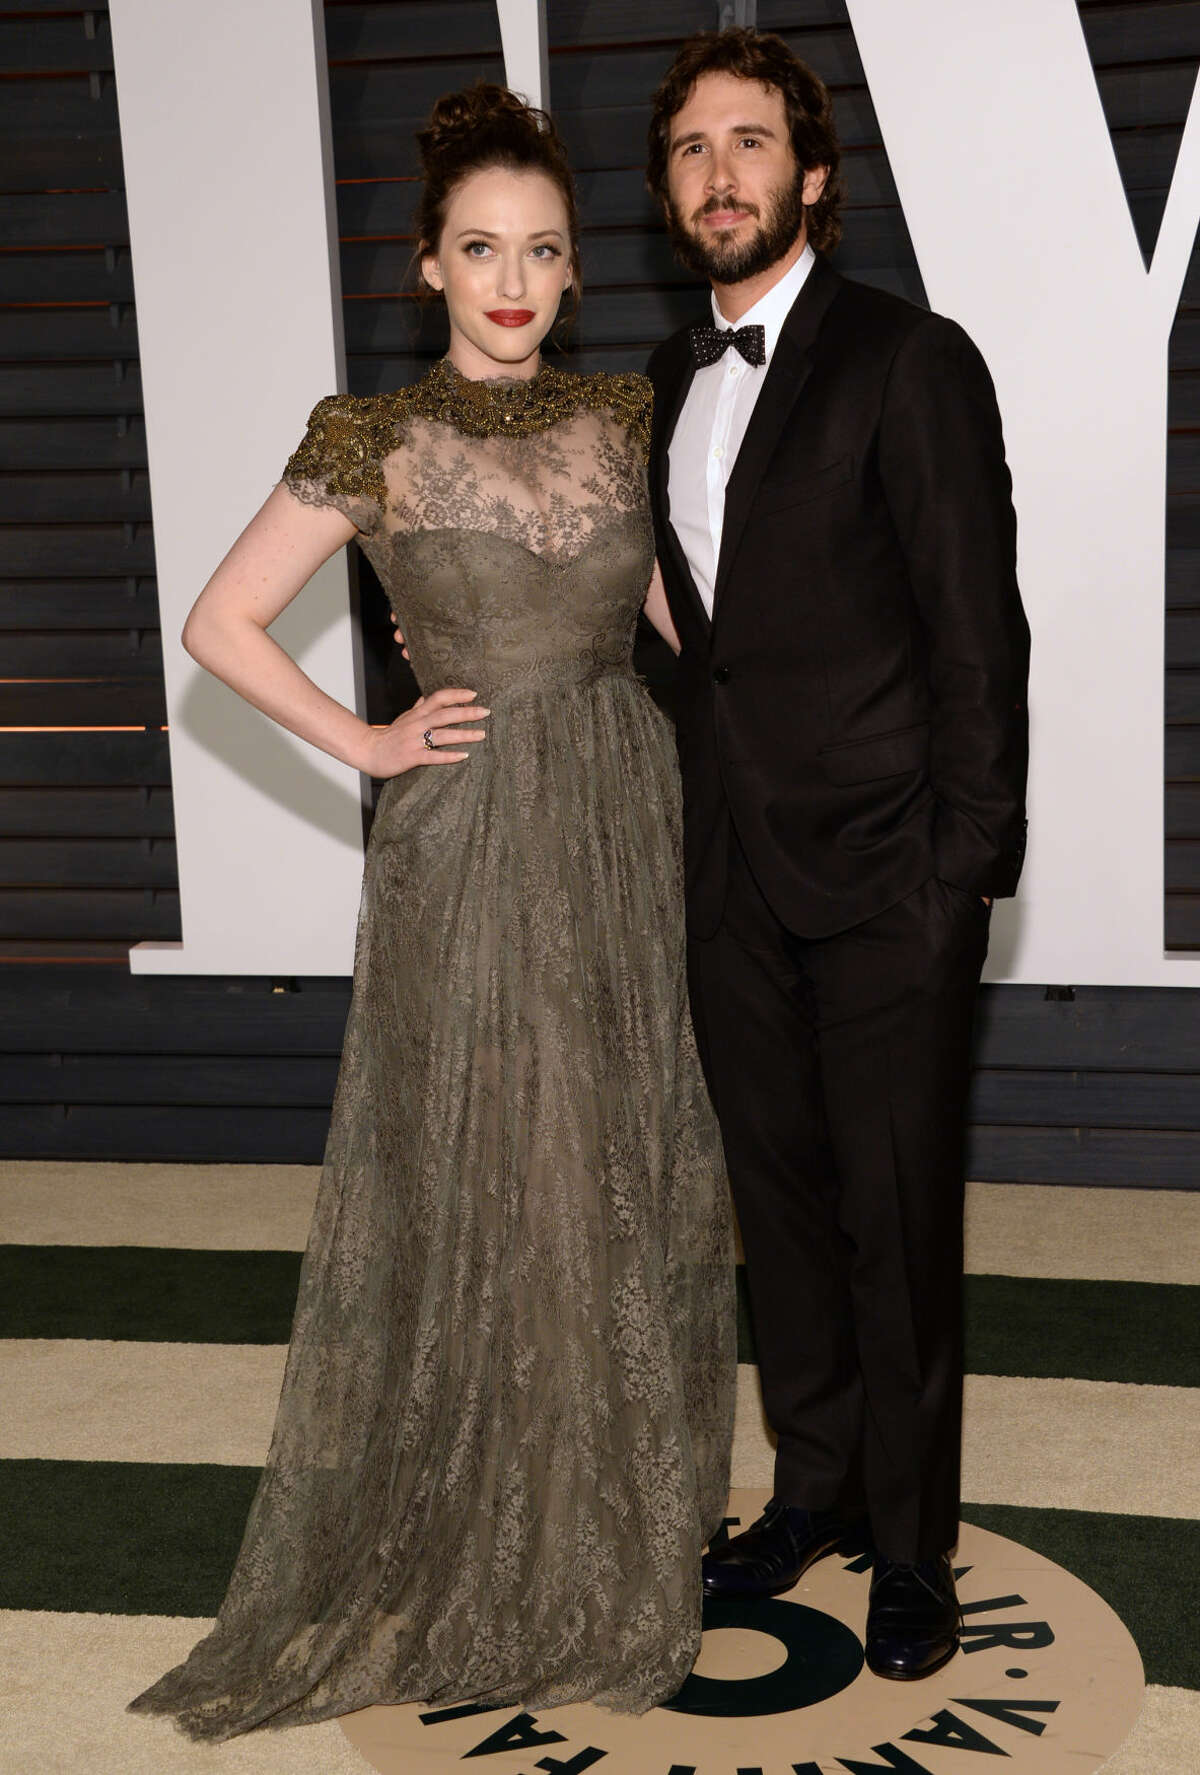 Kat Dennings, left, and Josh Groban arrive at the 2015 Vanity Fair Oscar Party on Sunday, Feb. 22, 2015, in Beverly Hills, Calif. (Photo by Evan Agostini/Invision/AP)